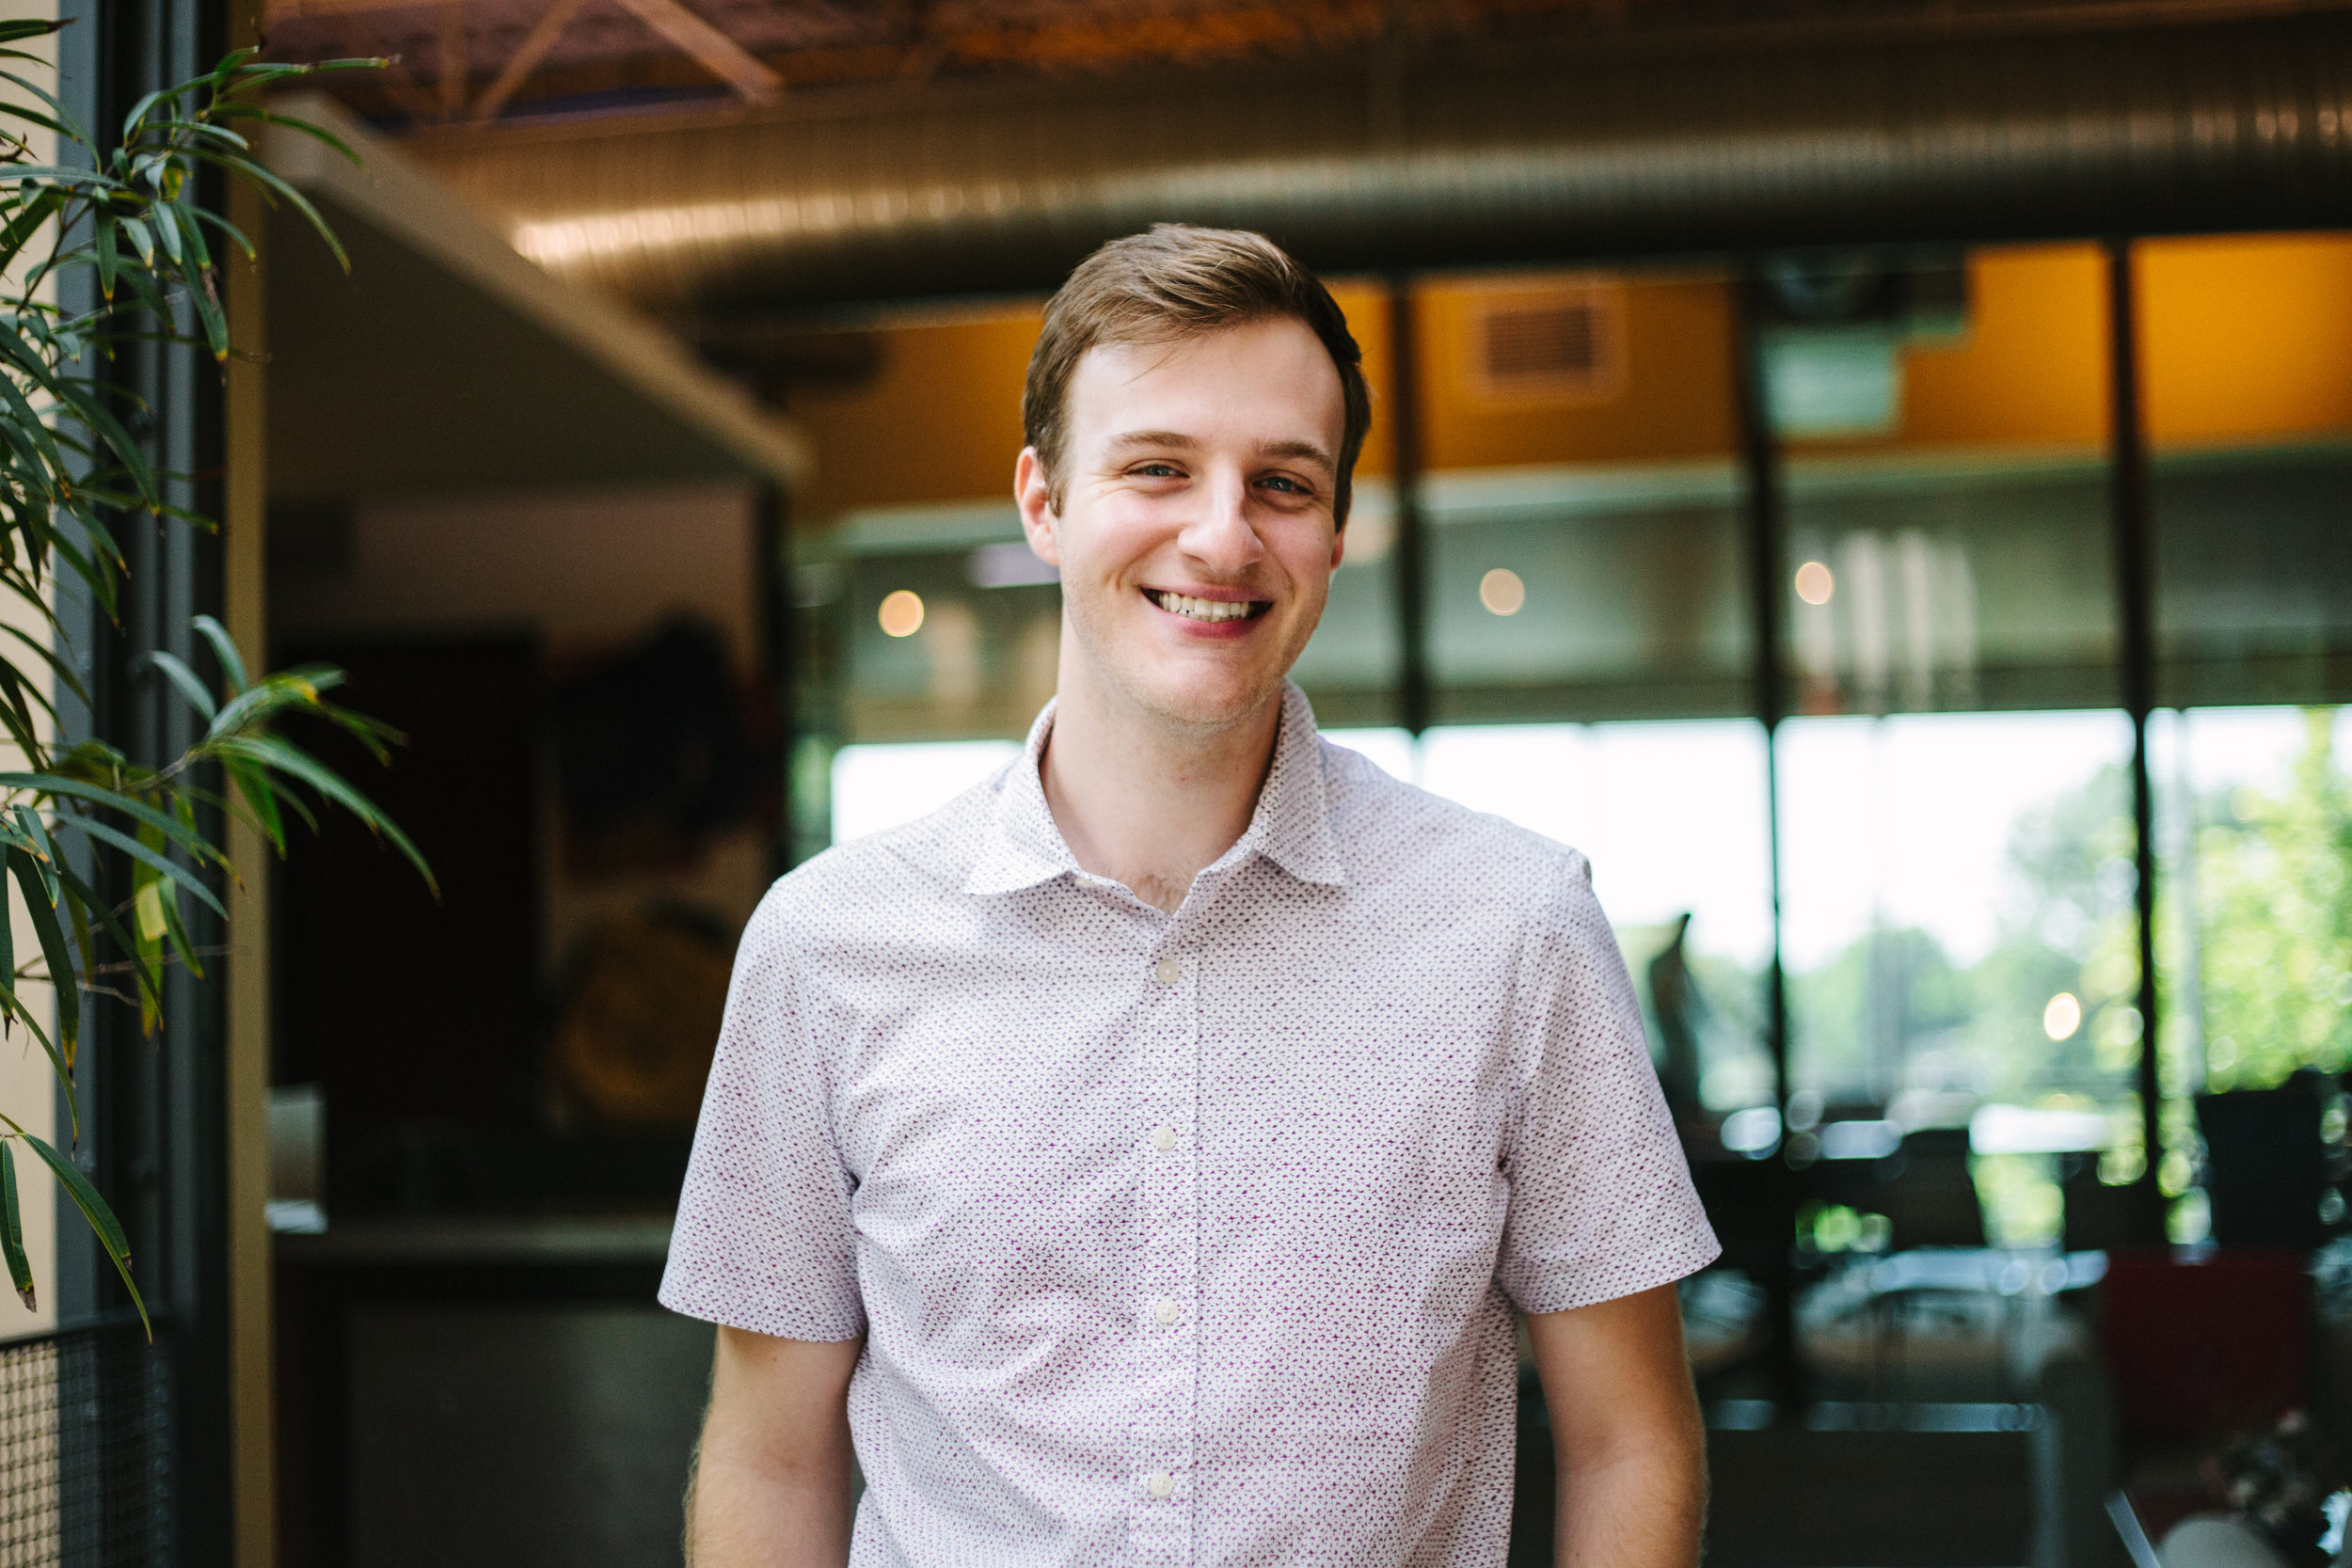 Jaron Rhoda | Executive Client Services Manager & Ream Lead   Jaron joined the Sapper team in February of 2017 and has loved working alongside his scrappy and innovative teammates in client services ever since. When Jaron is not at work, you can find him researching Oscar trivia, reading play scripts for fun, or stealing attention from his neighbor's cats.